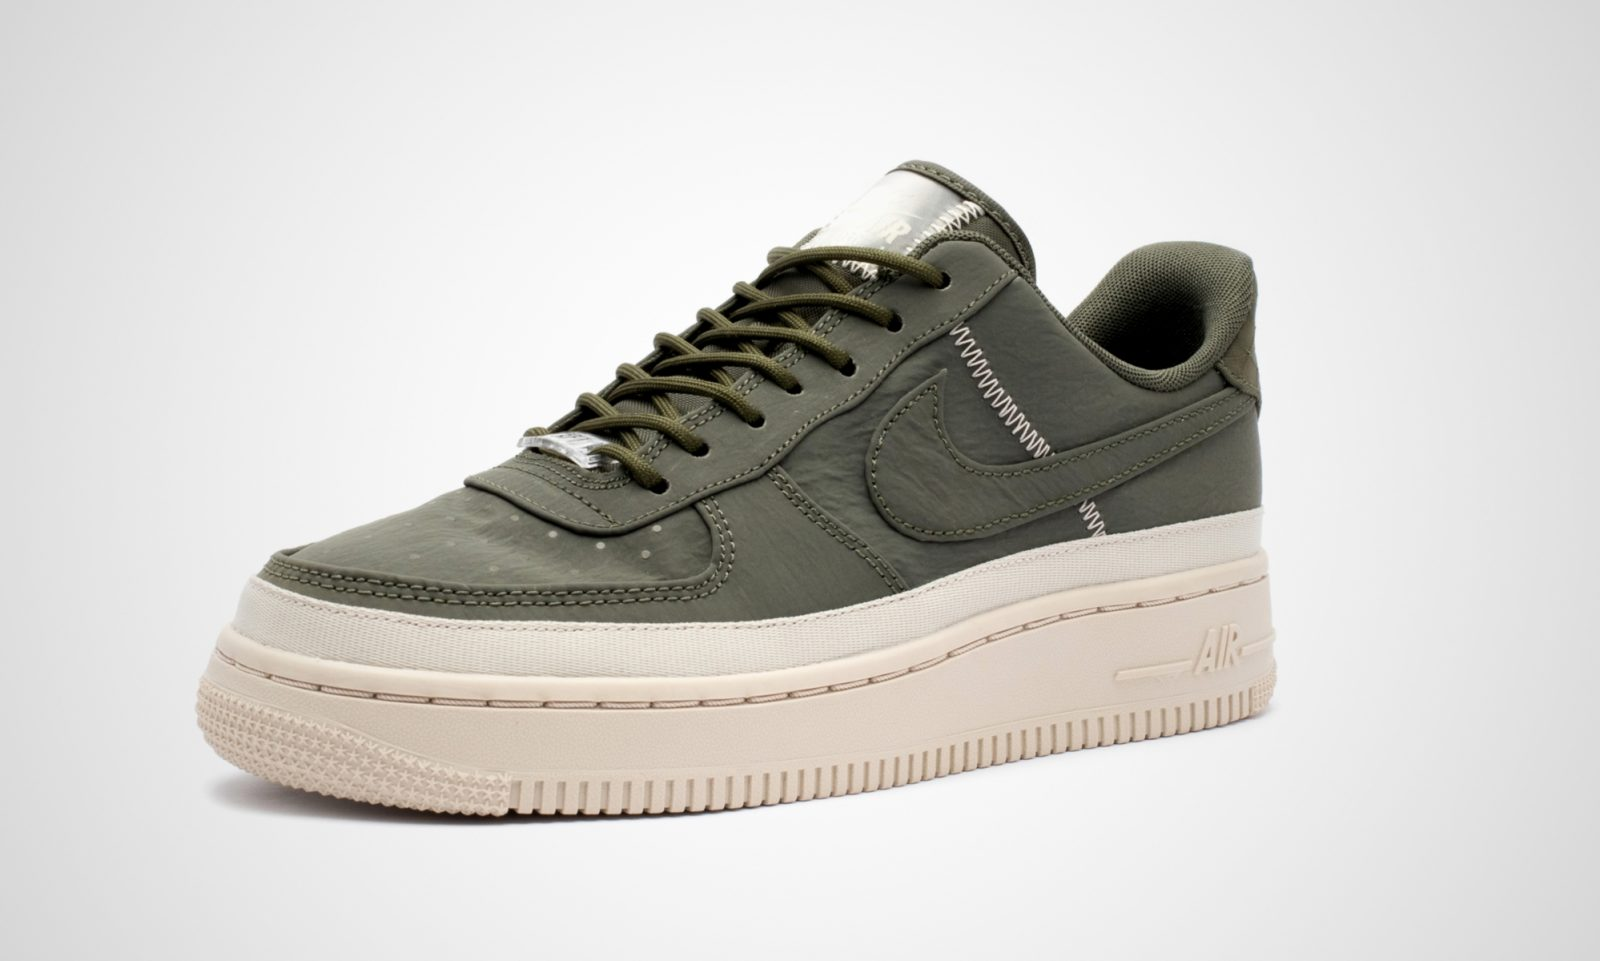 Nike Air Force 1 '07 SE Nylon Cargo Green | AA0287 302